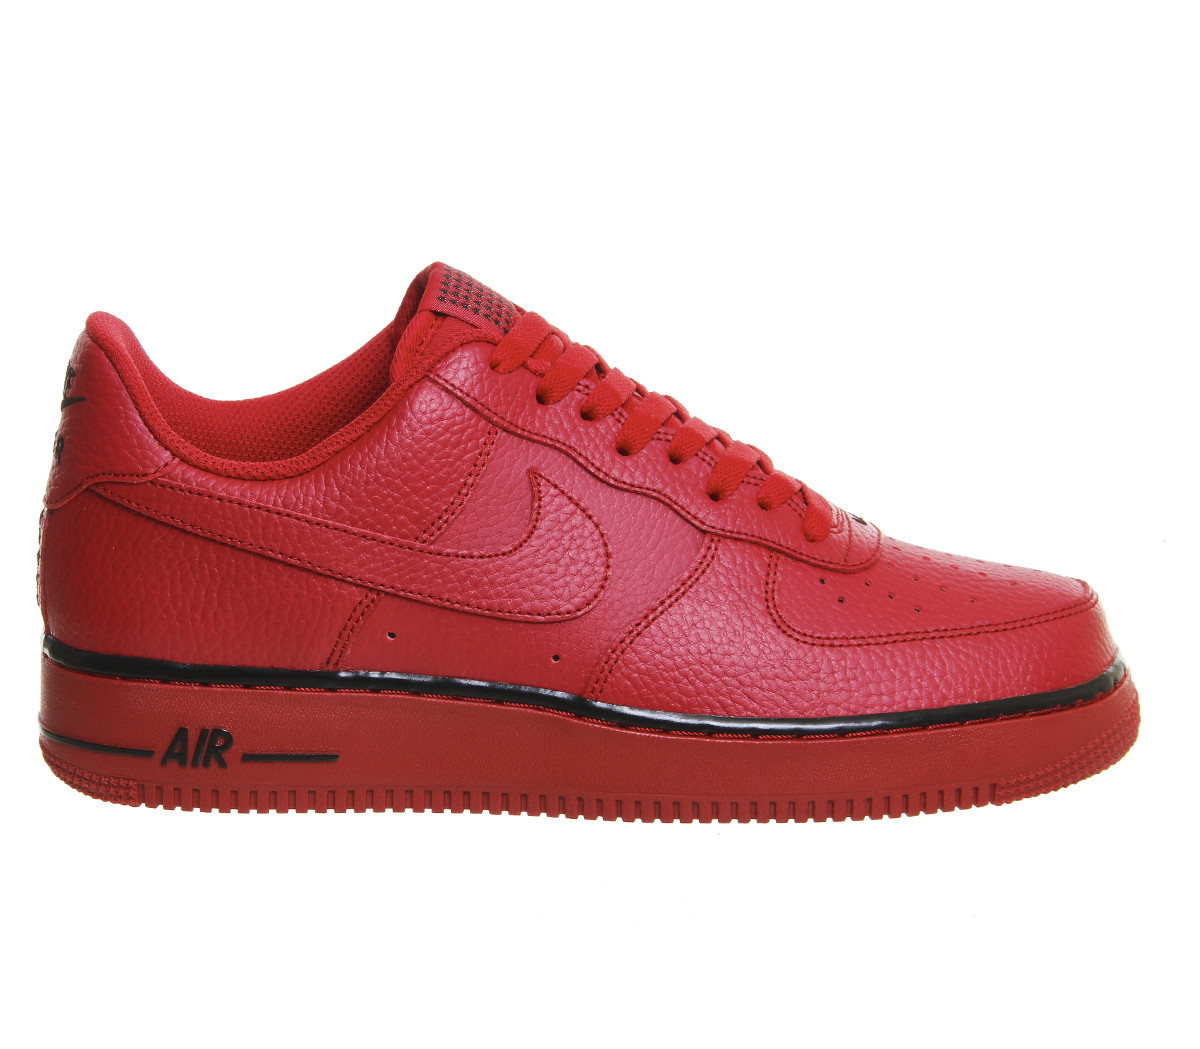 lyst nike air force one in red for men. Black Bedroom Furniture Sets. Home Design Ideas